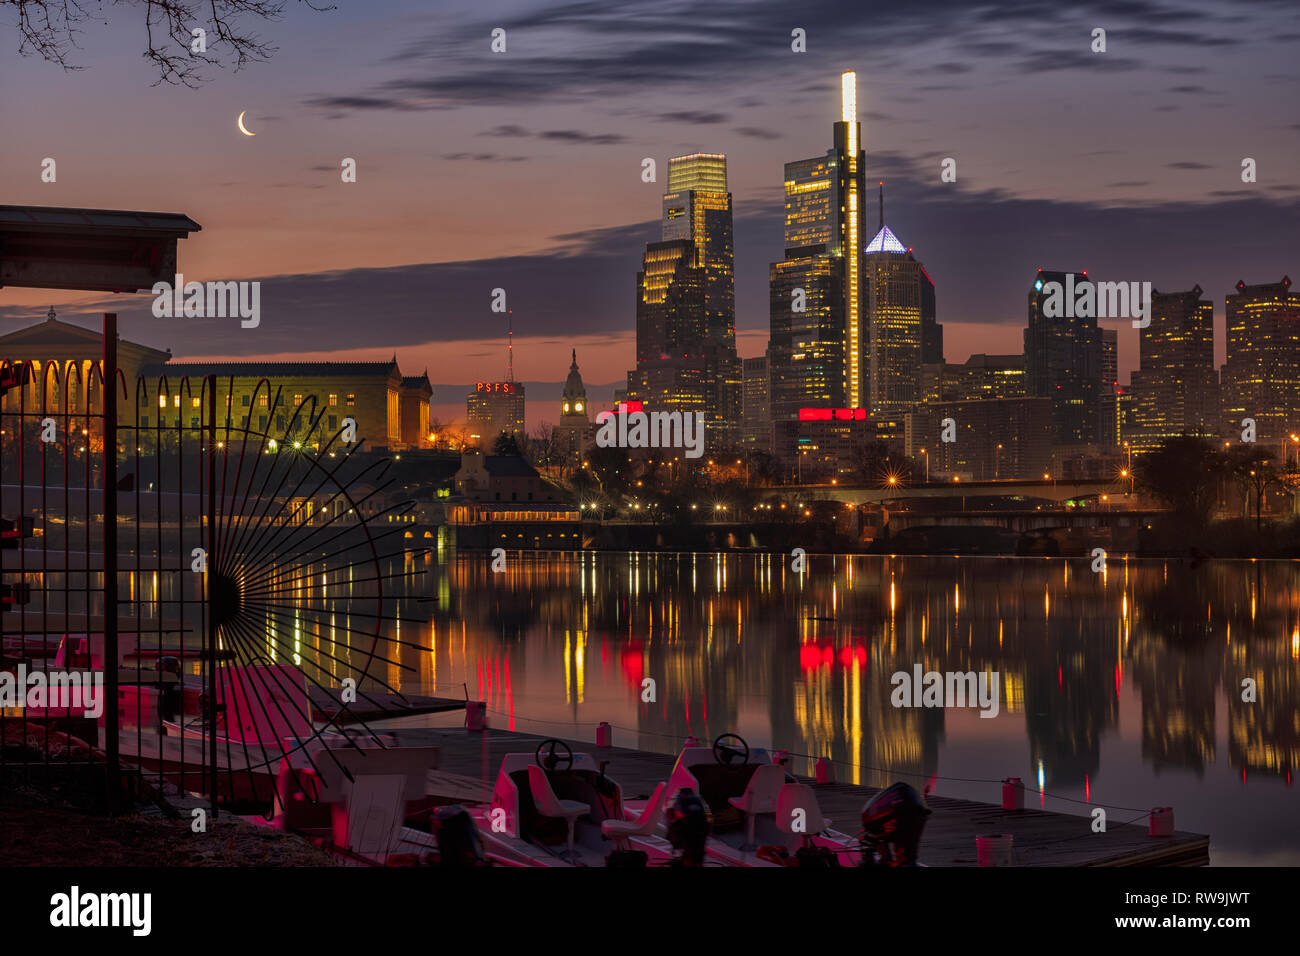 Philadelphia, Pennsylvania, The City of Brotherly Love, photographed from Boathouse Row along the Schuylkill River at sunrise. - Stock Image